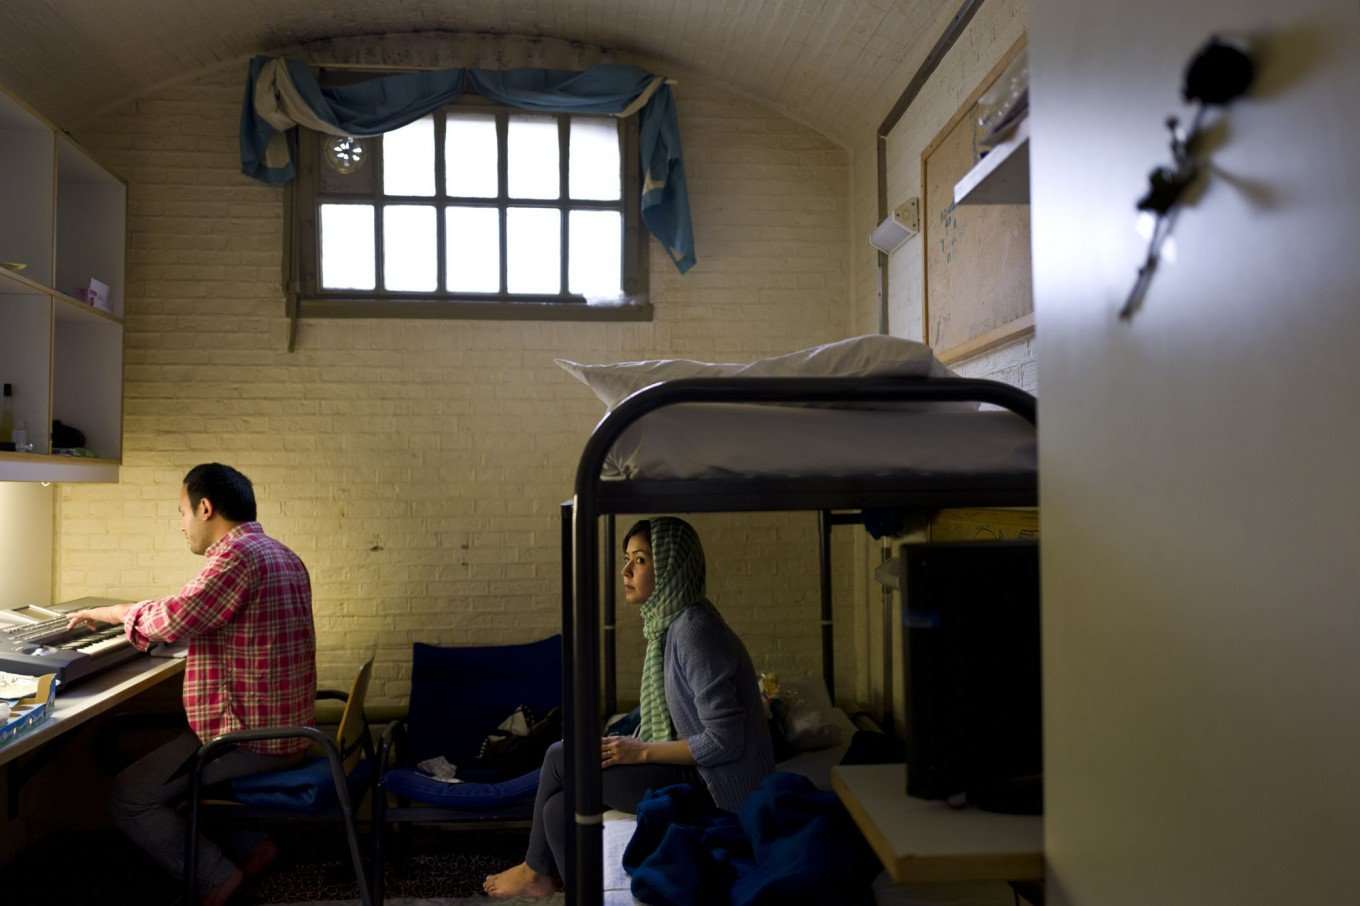 Afghan refugee Hamed Karmi, 27, plays keyboard next to his wife Farishta Morahami, 25, sitting on a bed inside their room at the former prison of De Koepel in Haarlem, Netherlands. (Photo: Jakarta Post)